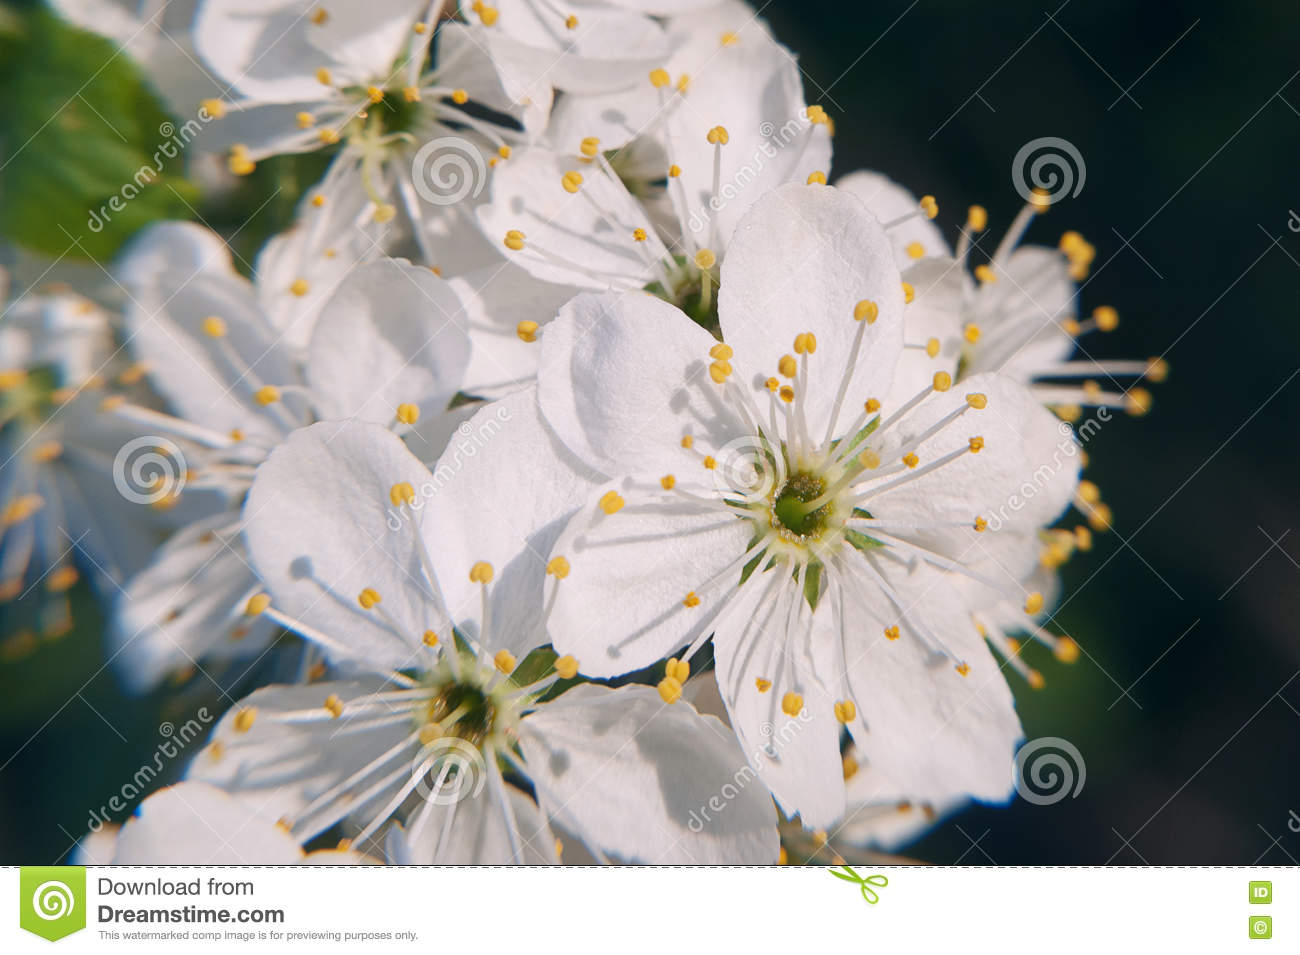 Photo Of The Flowering Crabapple Tree With White Flowers And Yellow